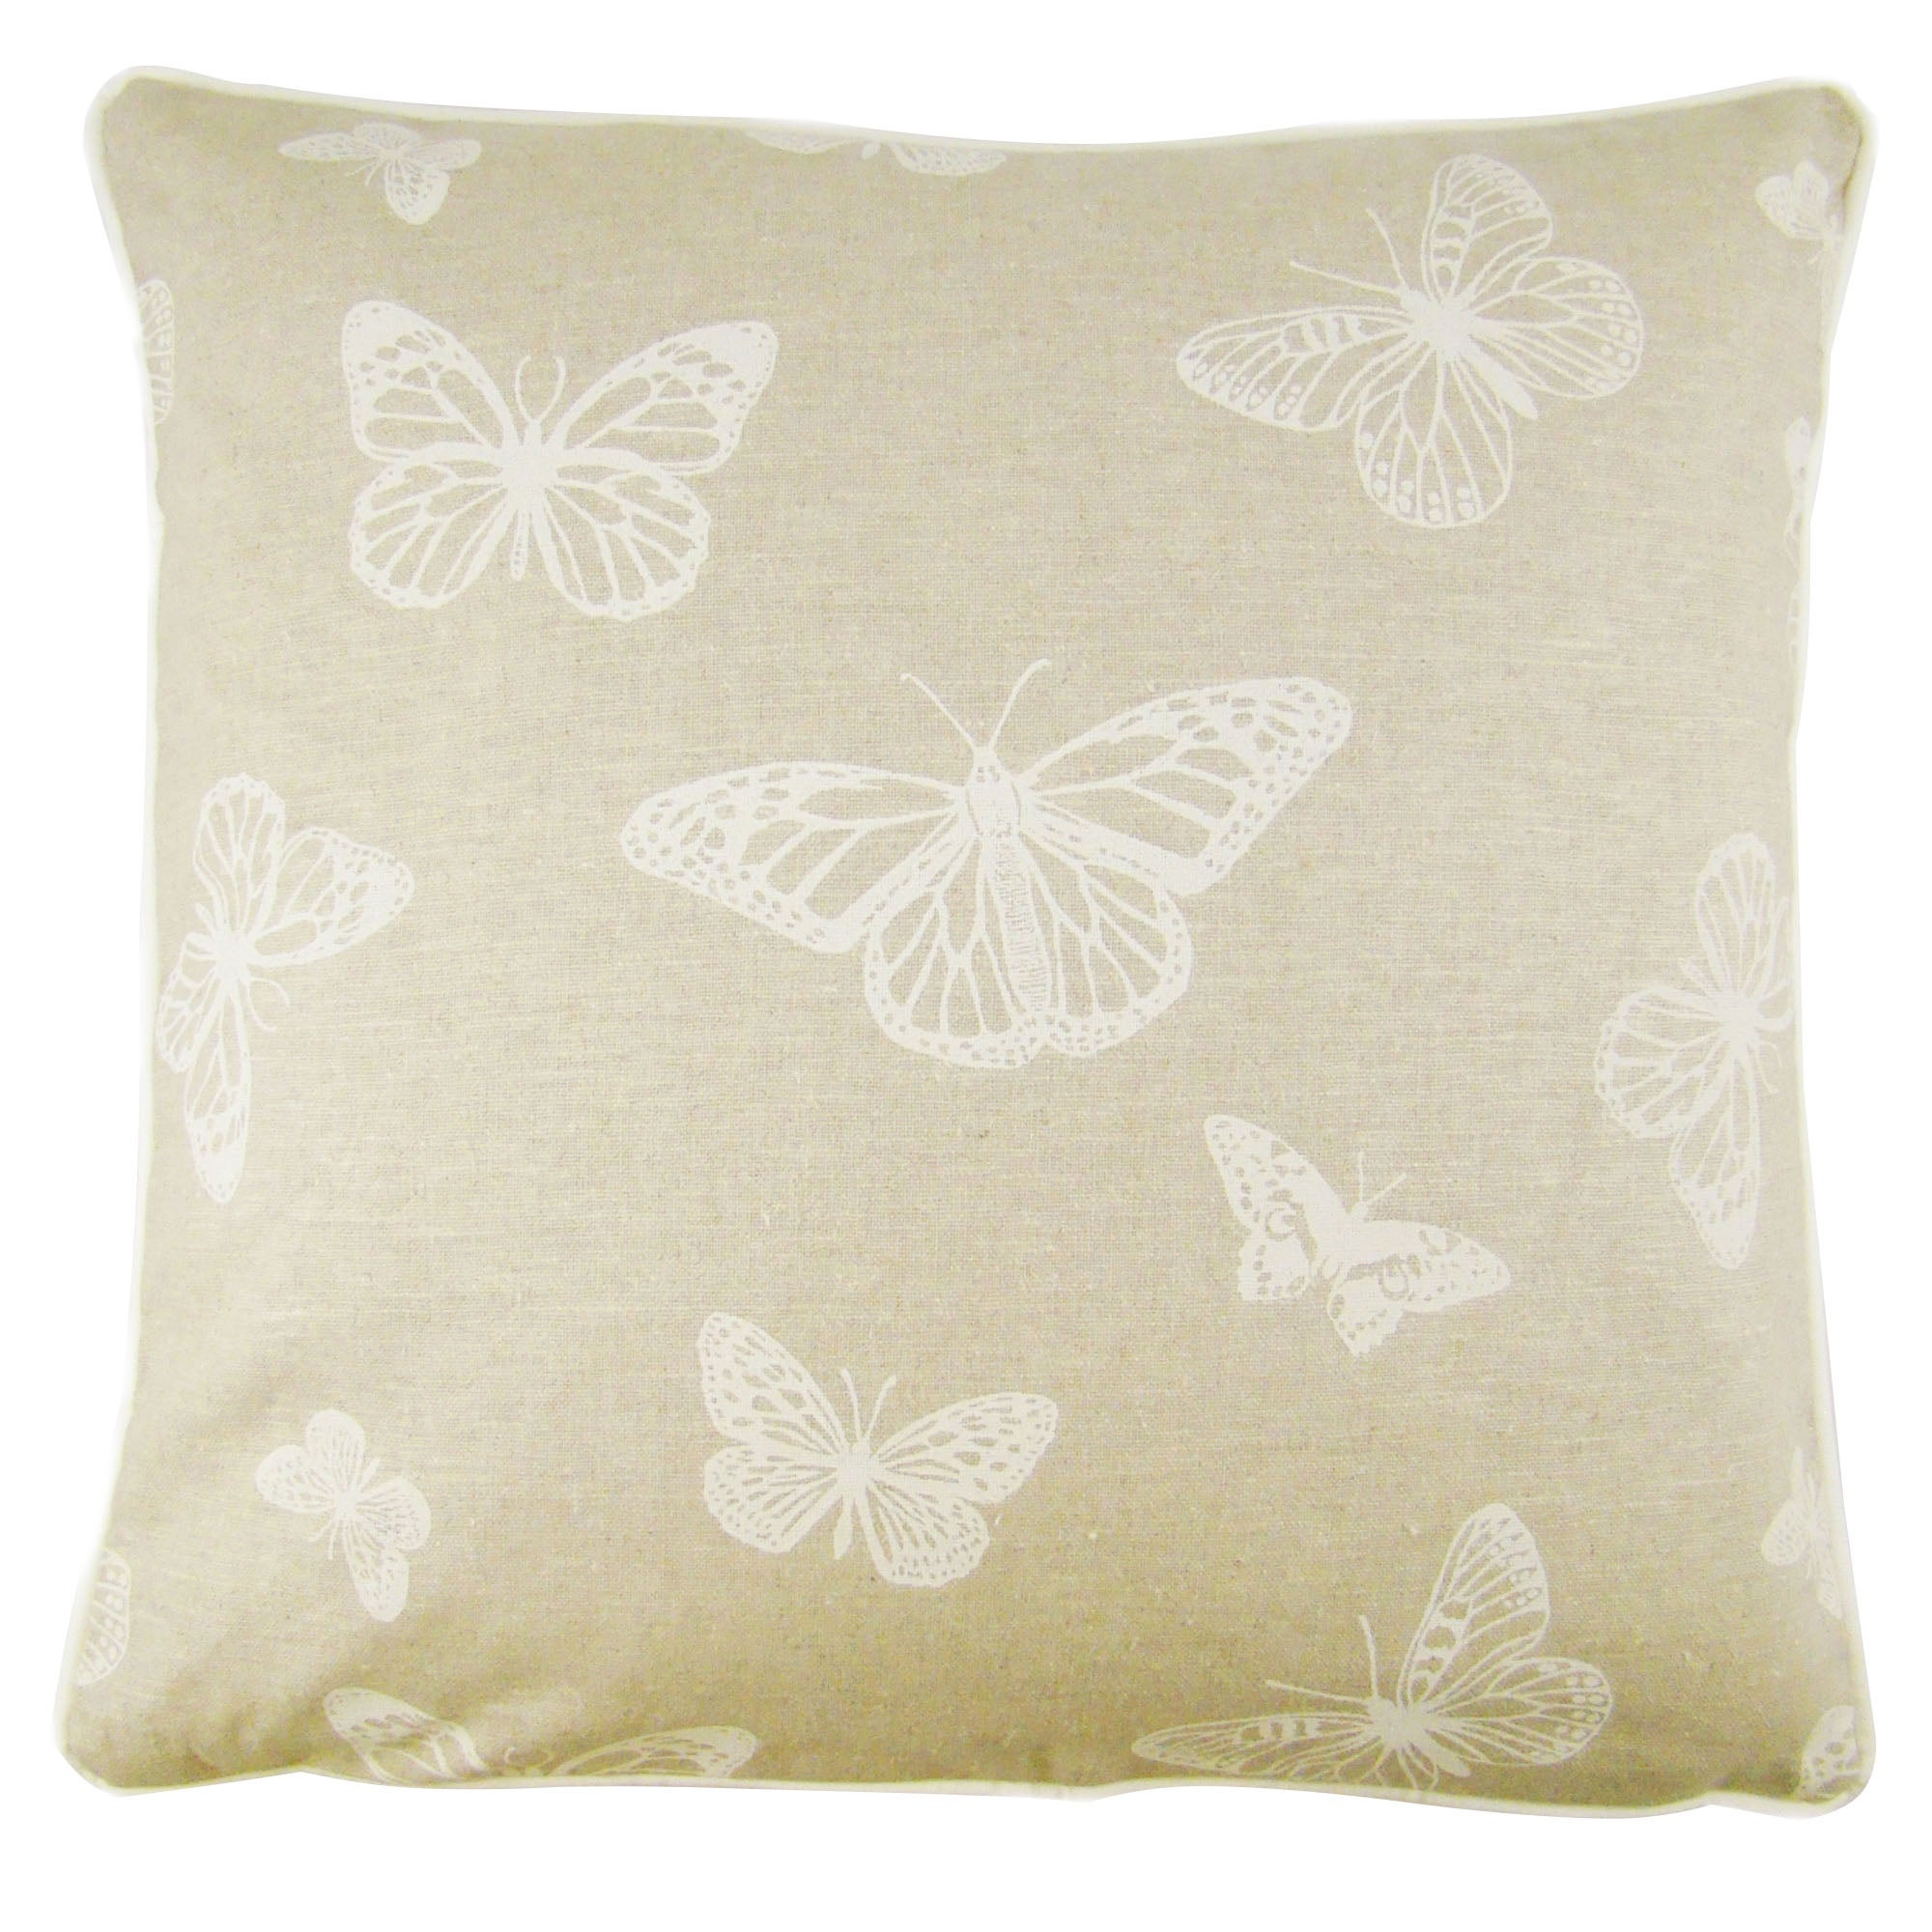 Photo of Butterfly cream cushion cover cream